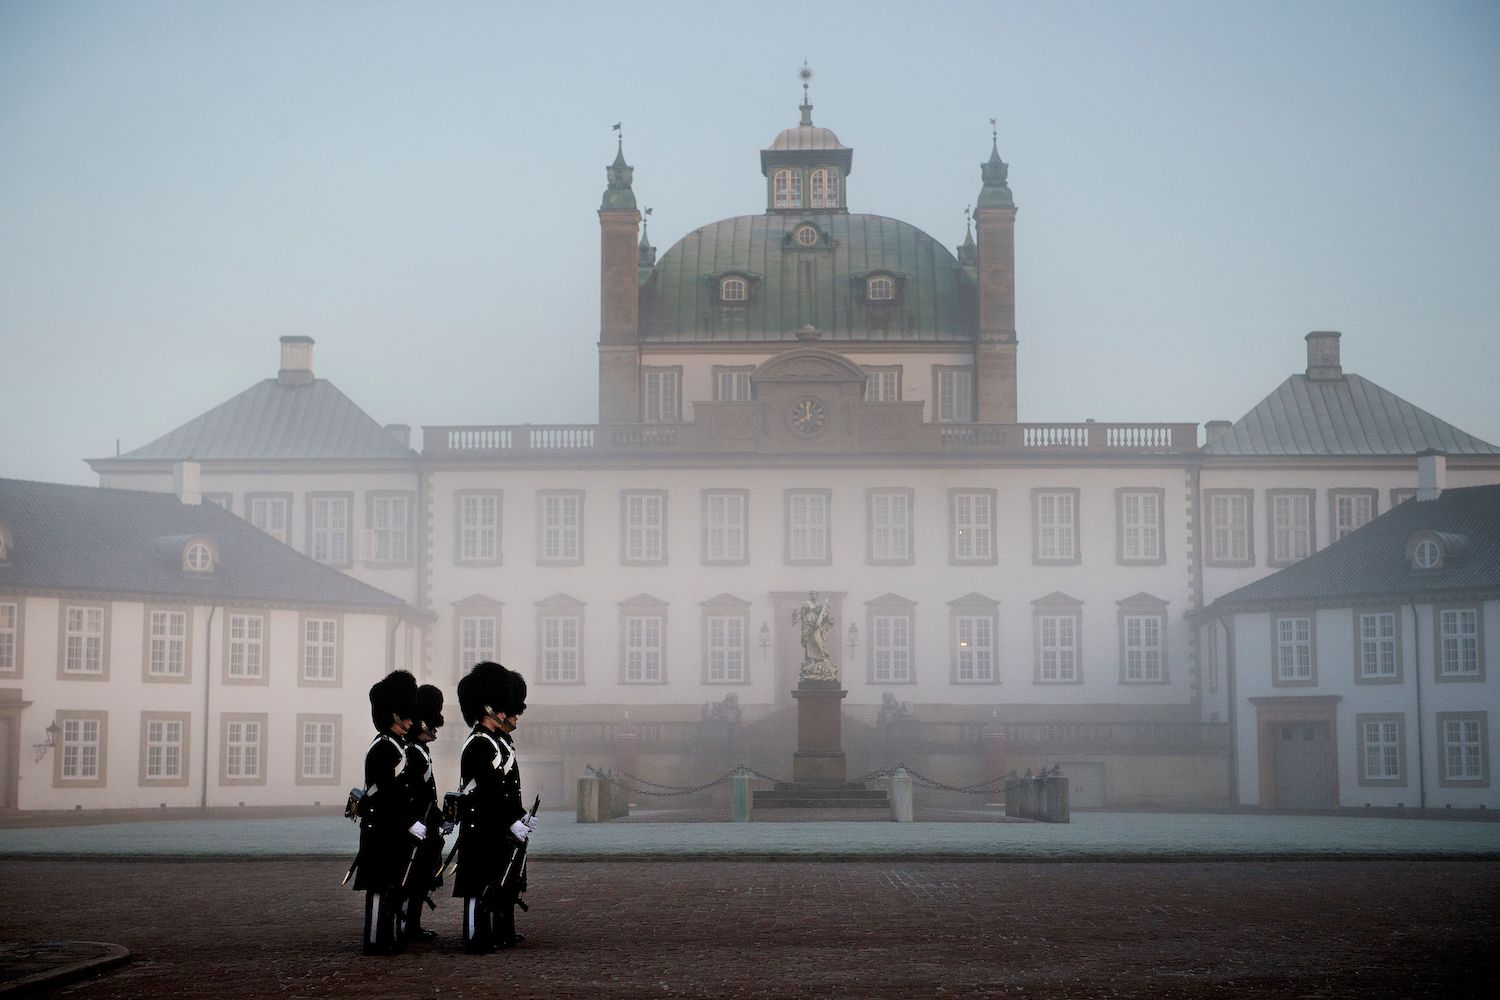 TOPSHOT - Members of the Danish Royal Guard stand in front of Fredensborg Palace in Fredensborg, Denmark, on February 14, 2018, after His Royal Highness Prince Henrik died on Tuesday, February 13, 23:18 at Fredensborg Castle. / AFP PHOTO / Scanpix / Liselotte Sabroe / Denmark OUT        (Photo credit should read LISELOTTE SABROE/AFP/Getty Images)